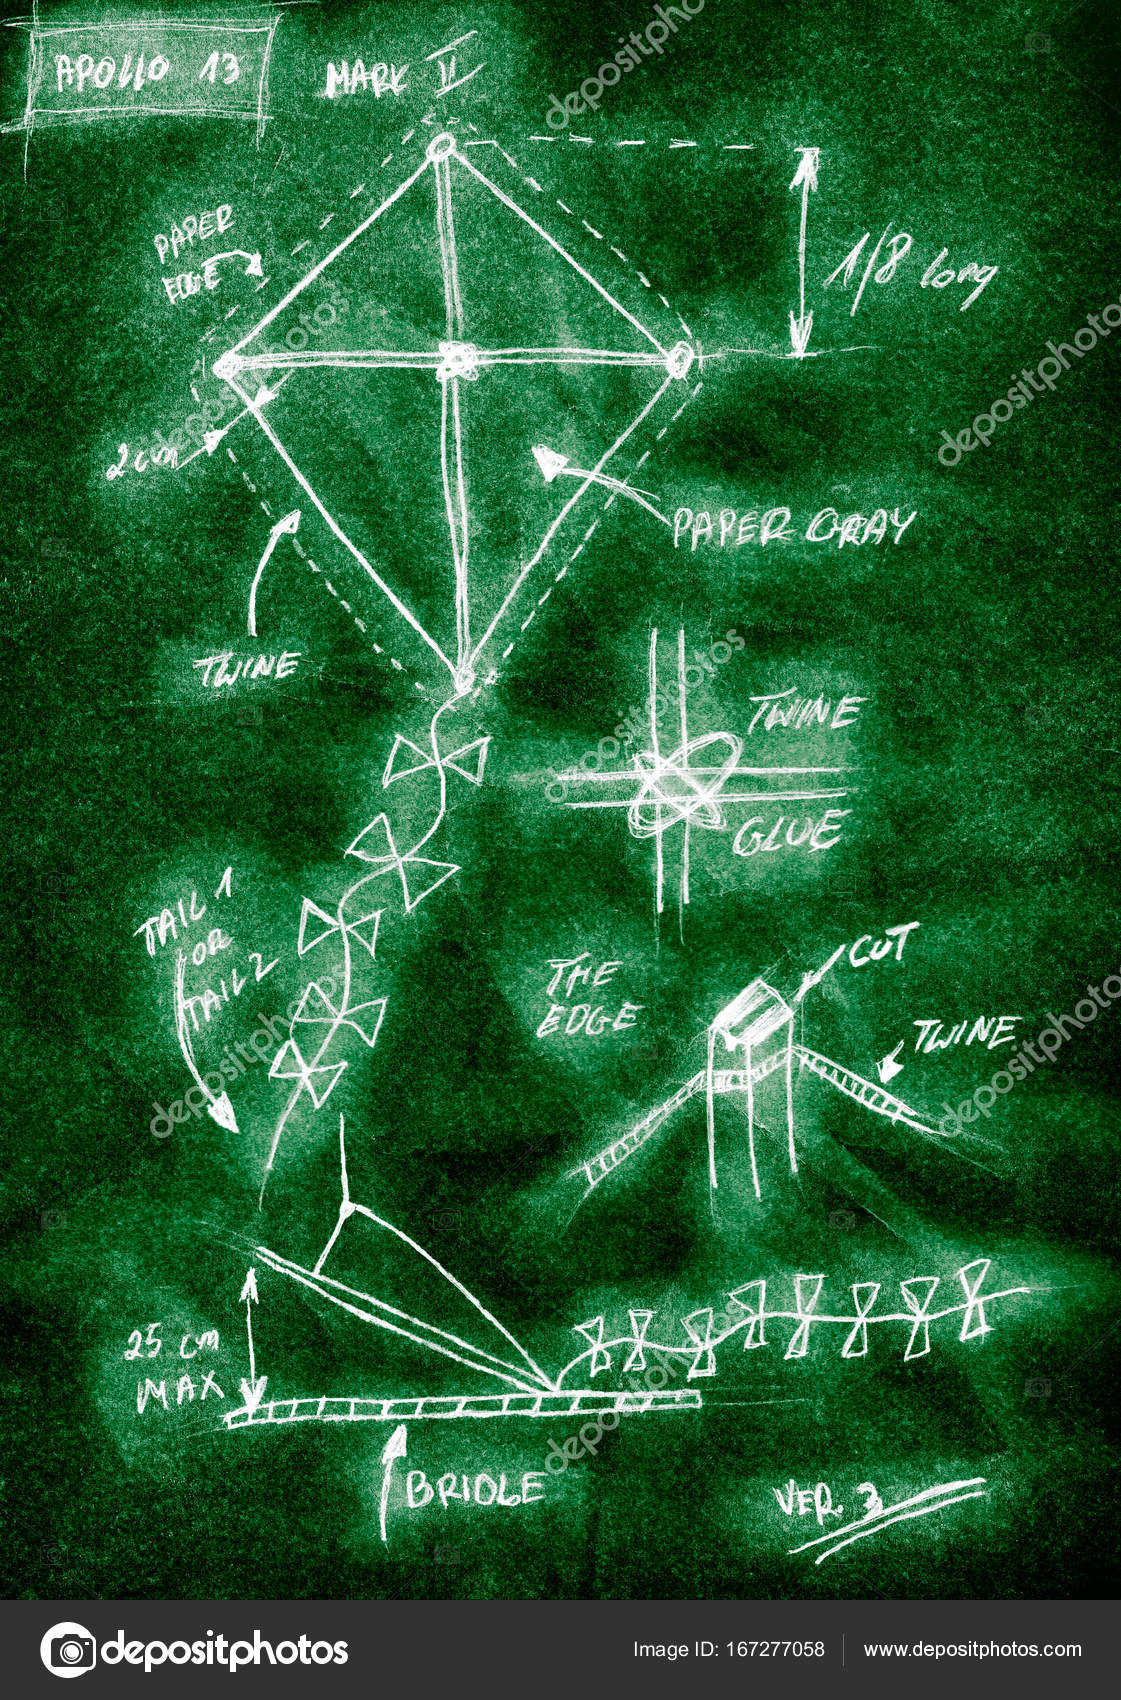 Green Handmade Diagram Of How To Build A Kite Stock Photo